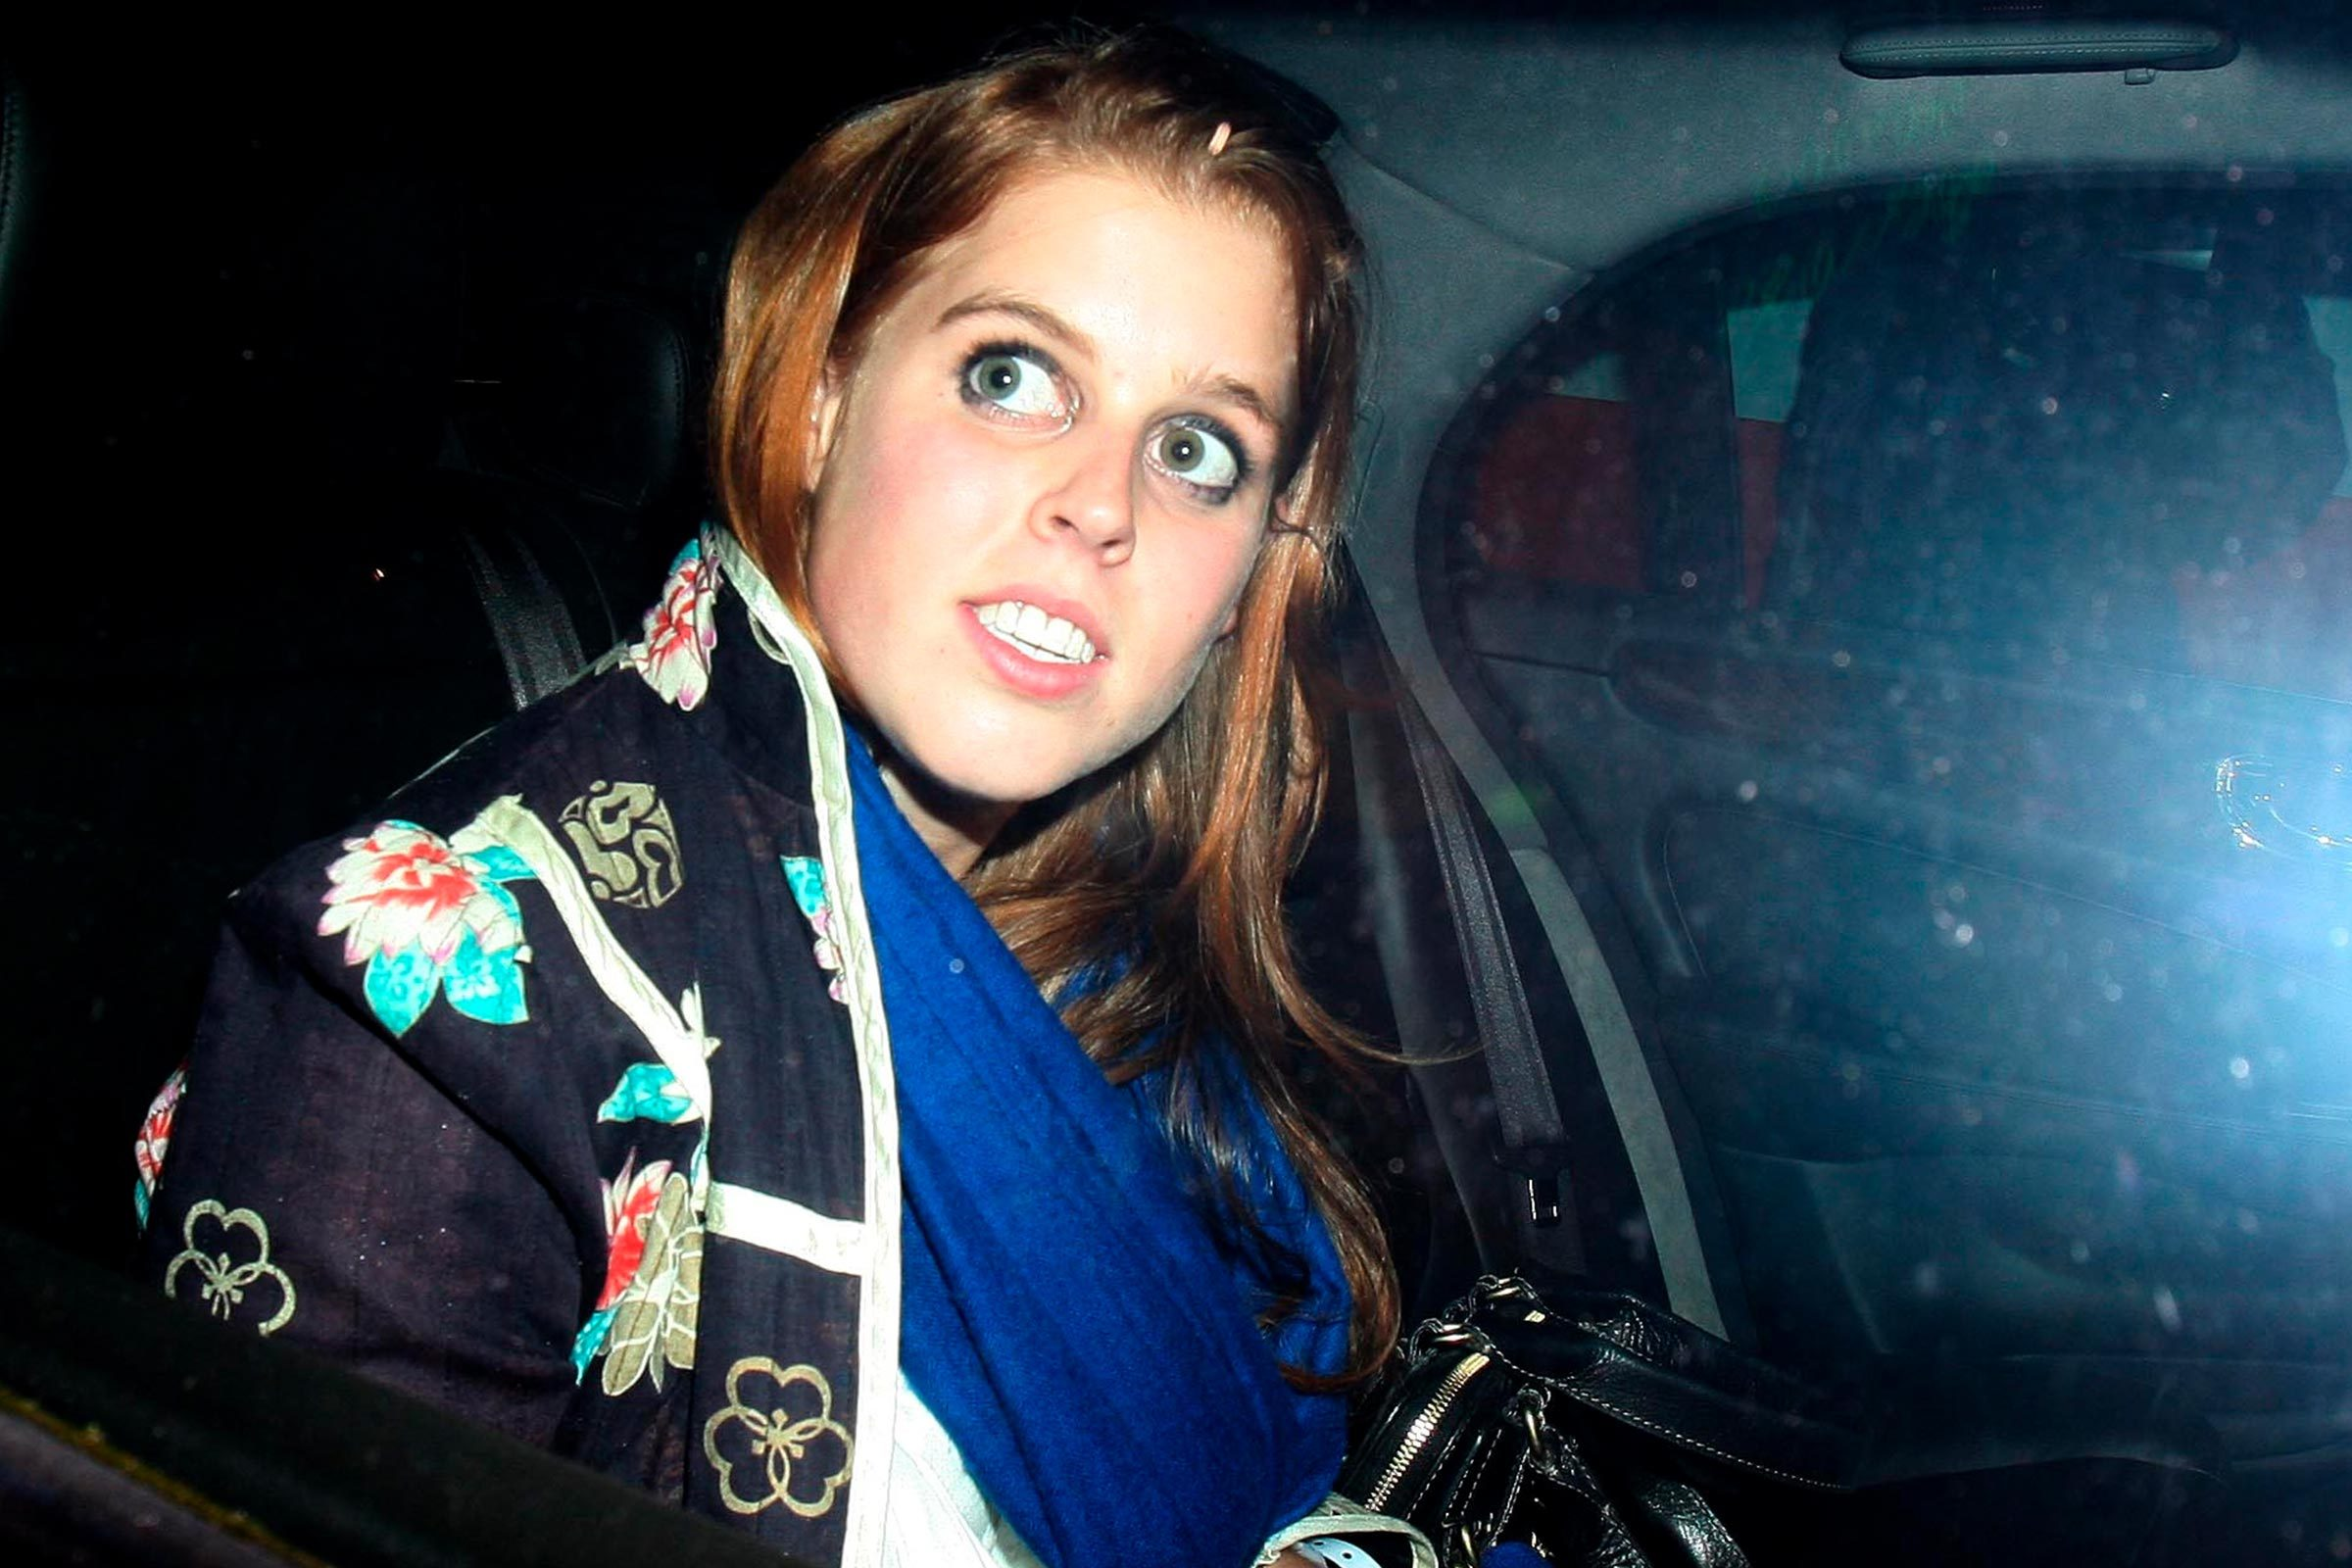 Princess Beatrice in car